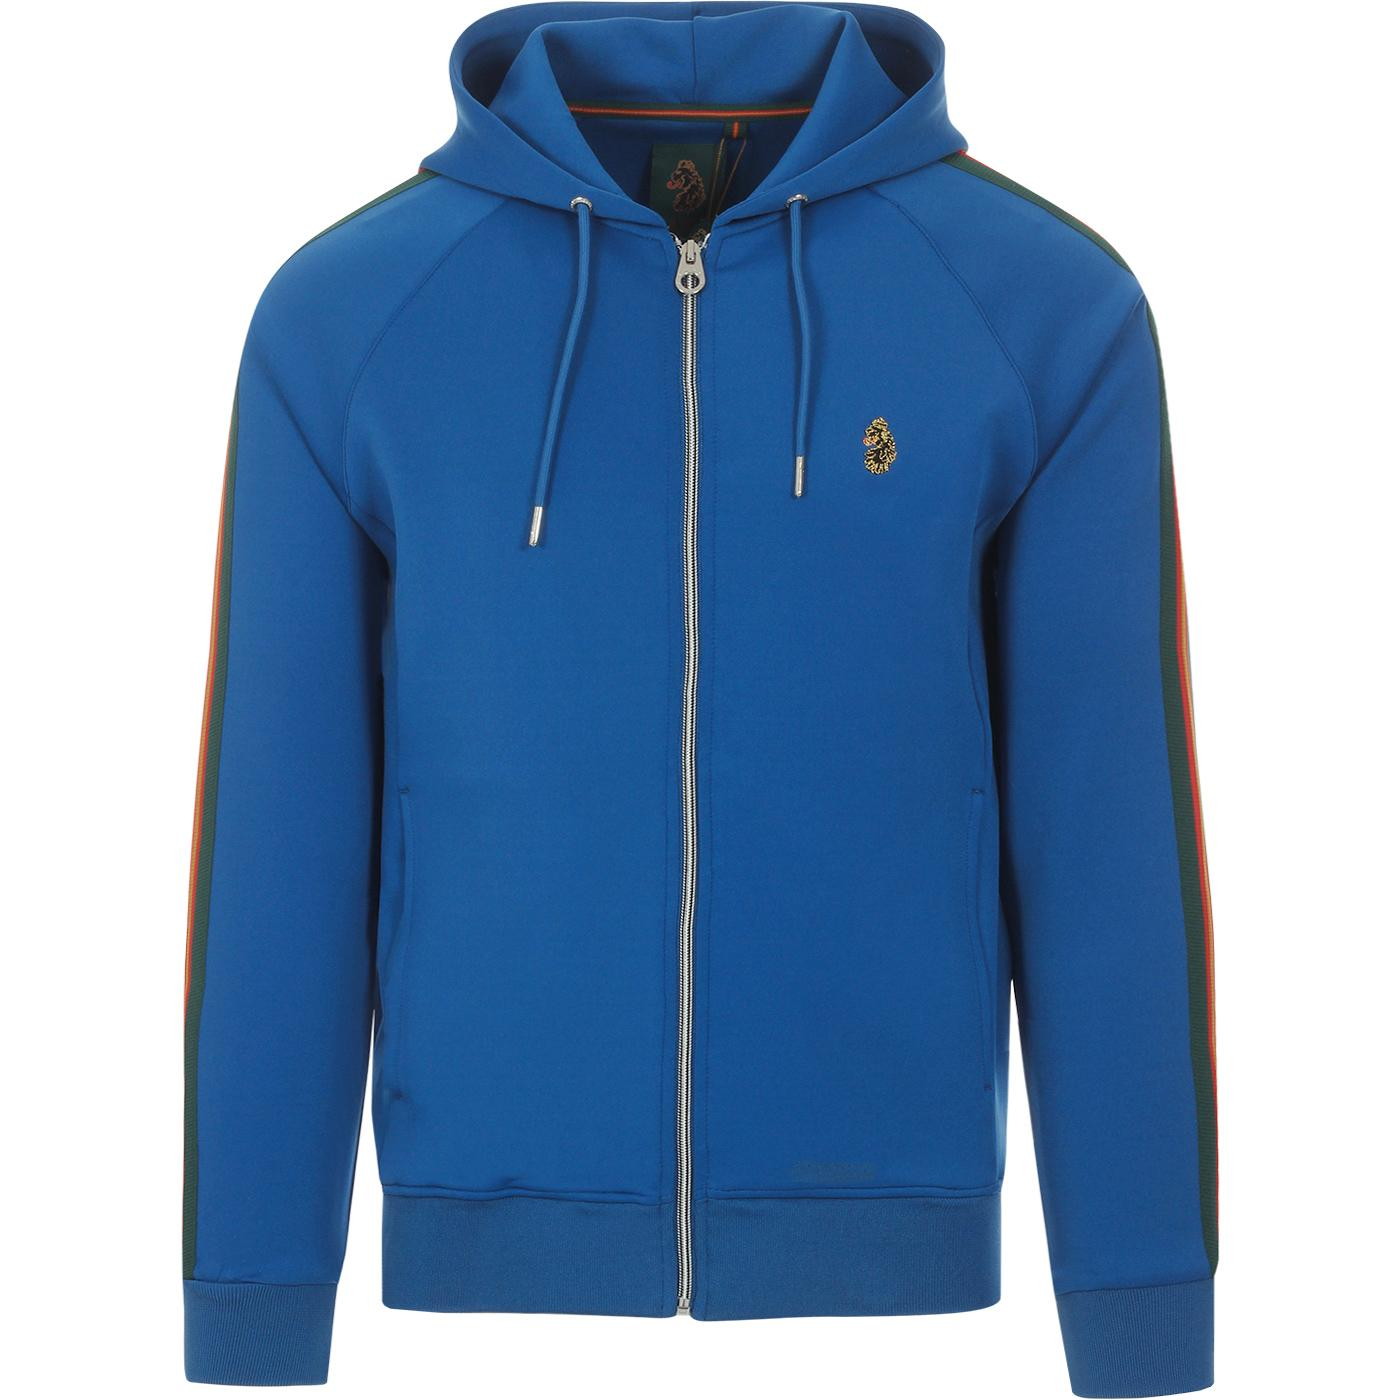 Dalgliesh LUKE SPORTS Retro Hooded Track Top BLUE